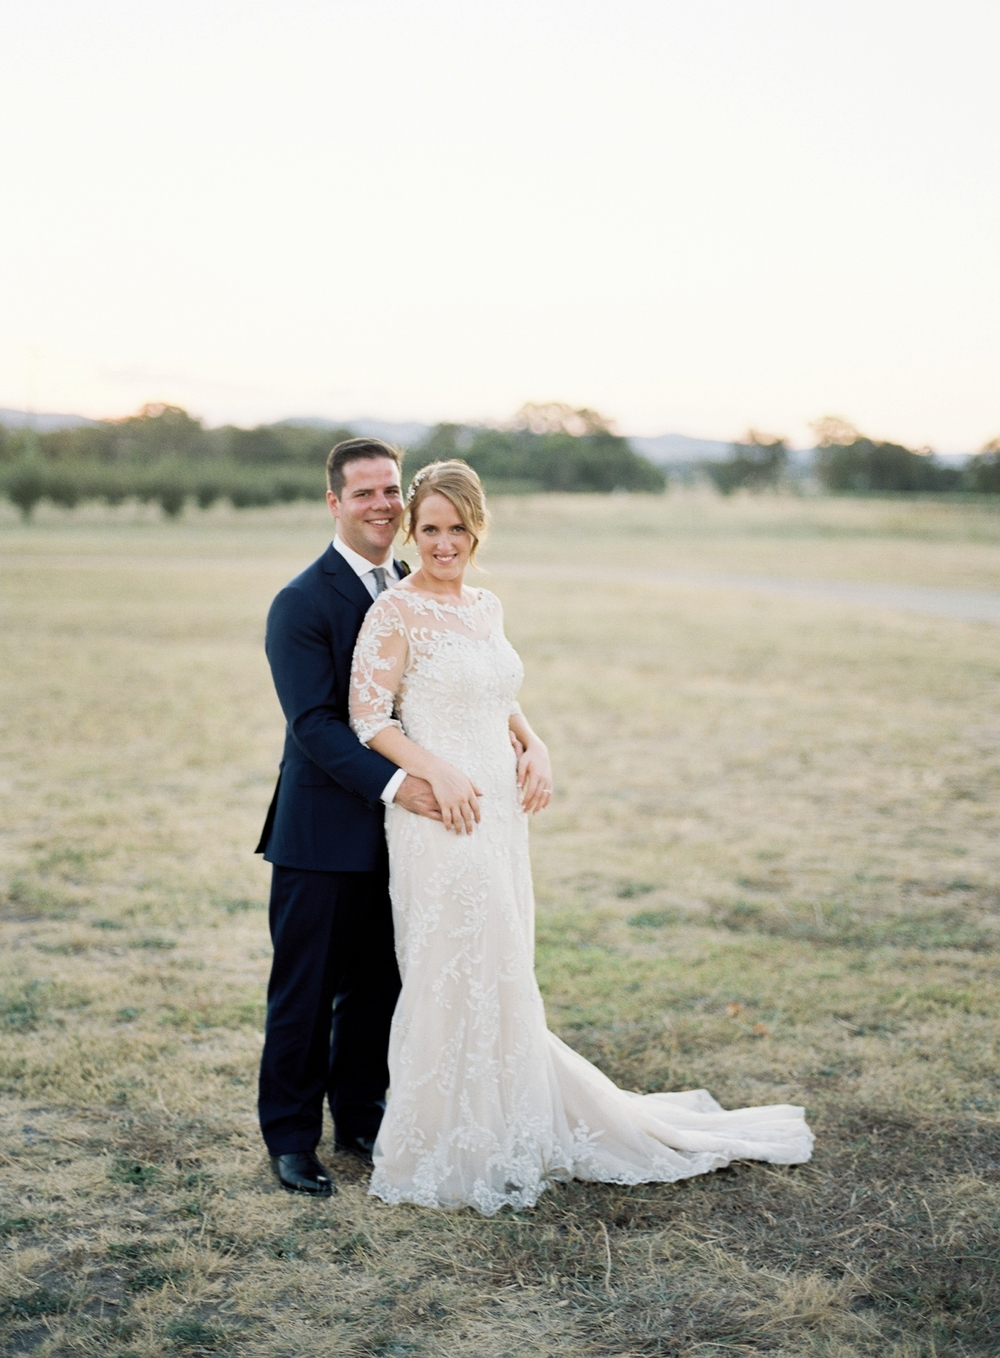 The Vine Grove Mudgee Wedding, Photography by Mr Edwards_1796.jpg